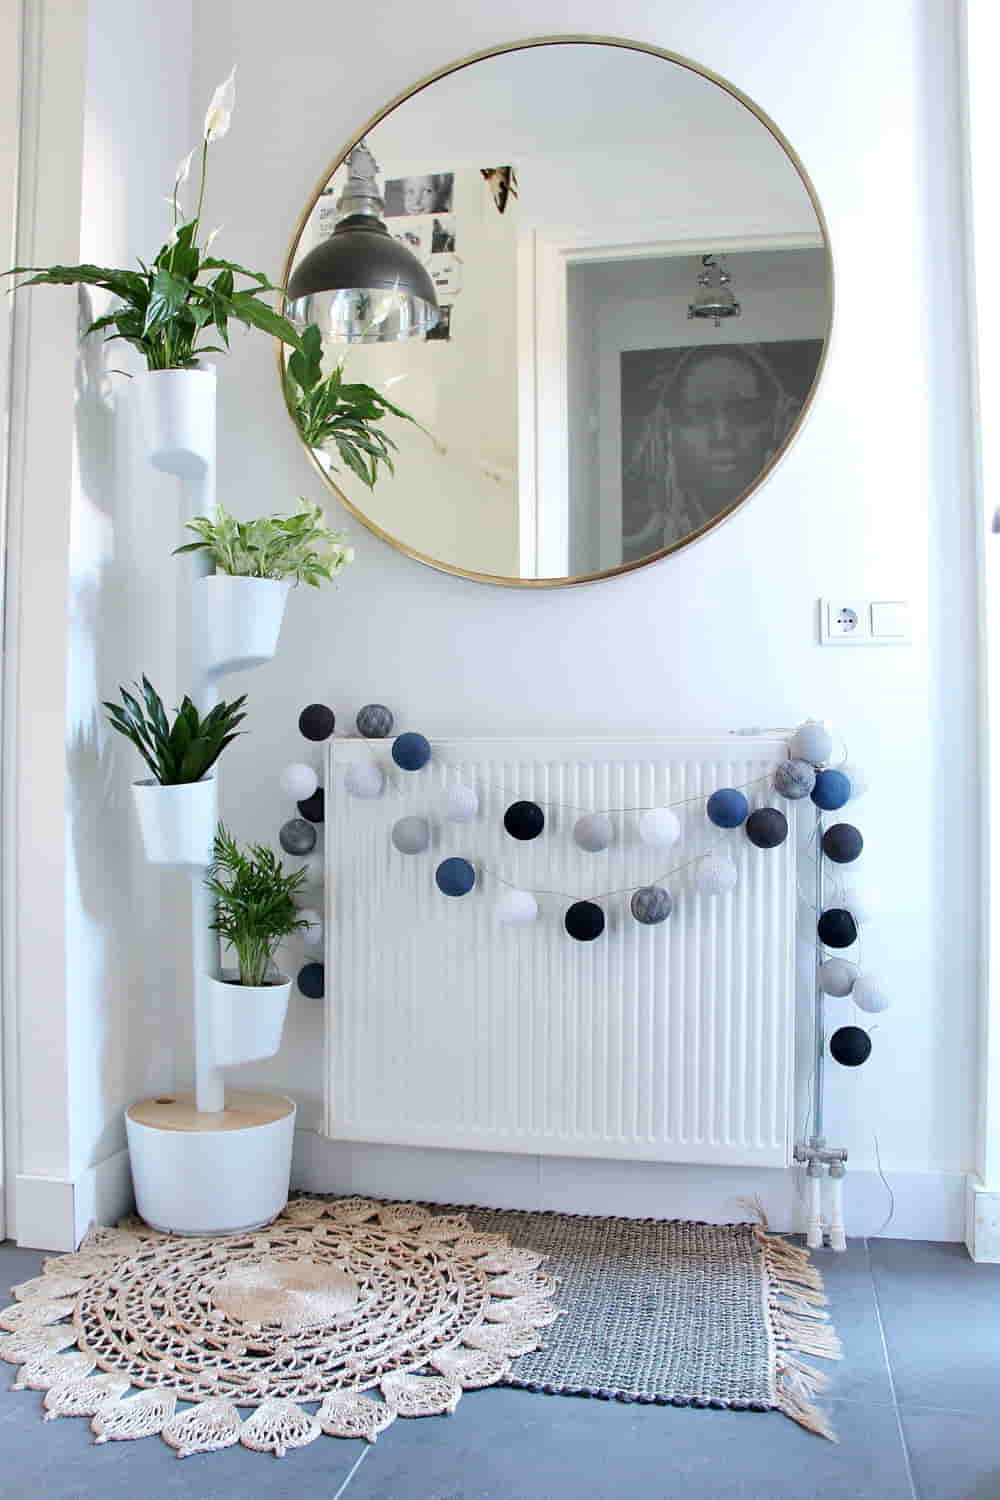 Entrance hall with self-watering planter